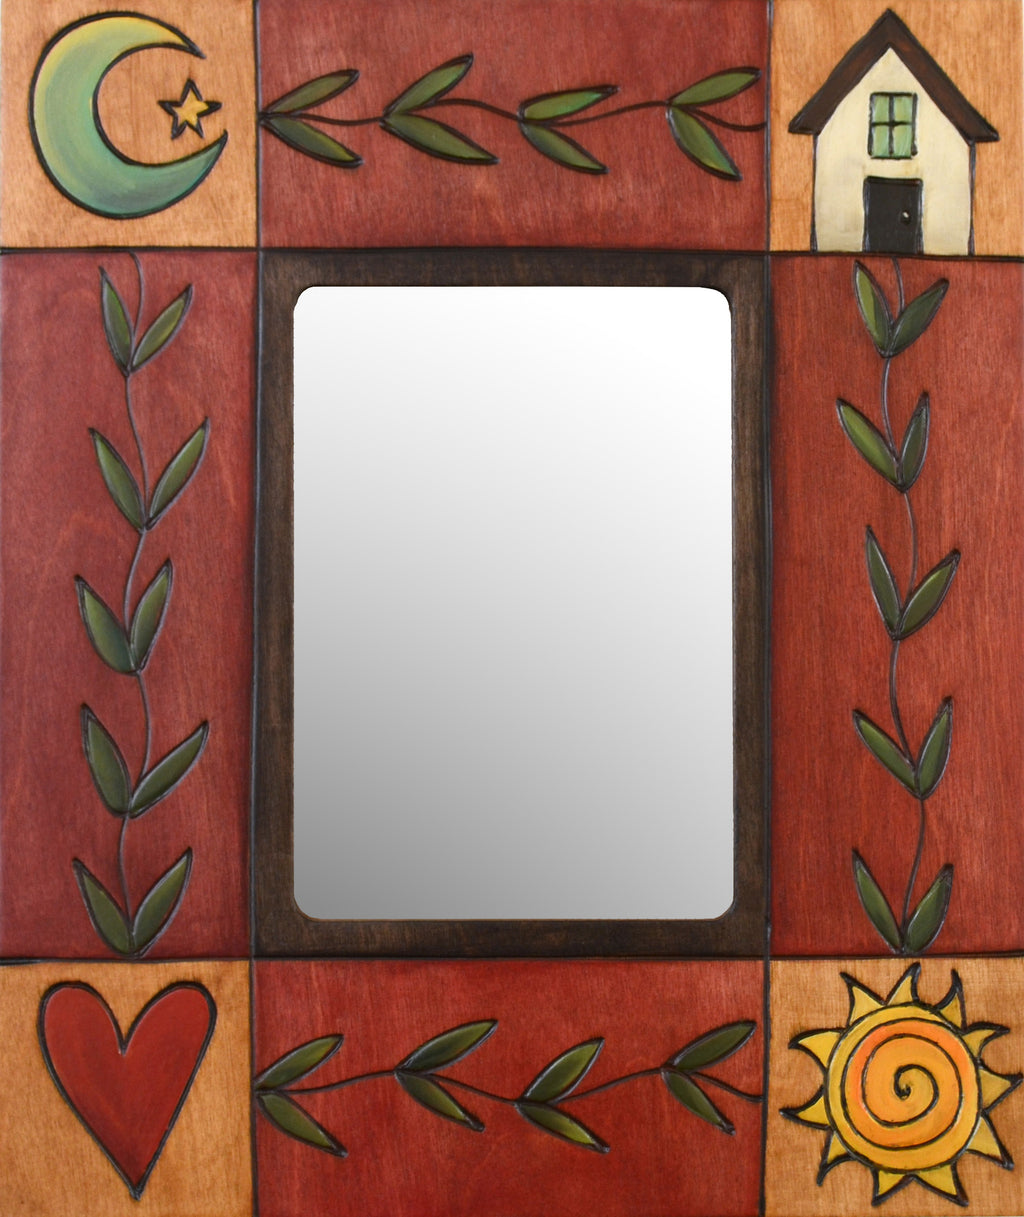 "Sticks handmade 5x7"" picture frame with vine and icon motif"